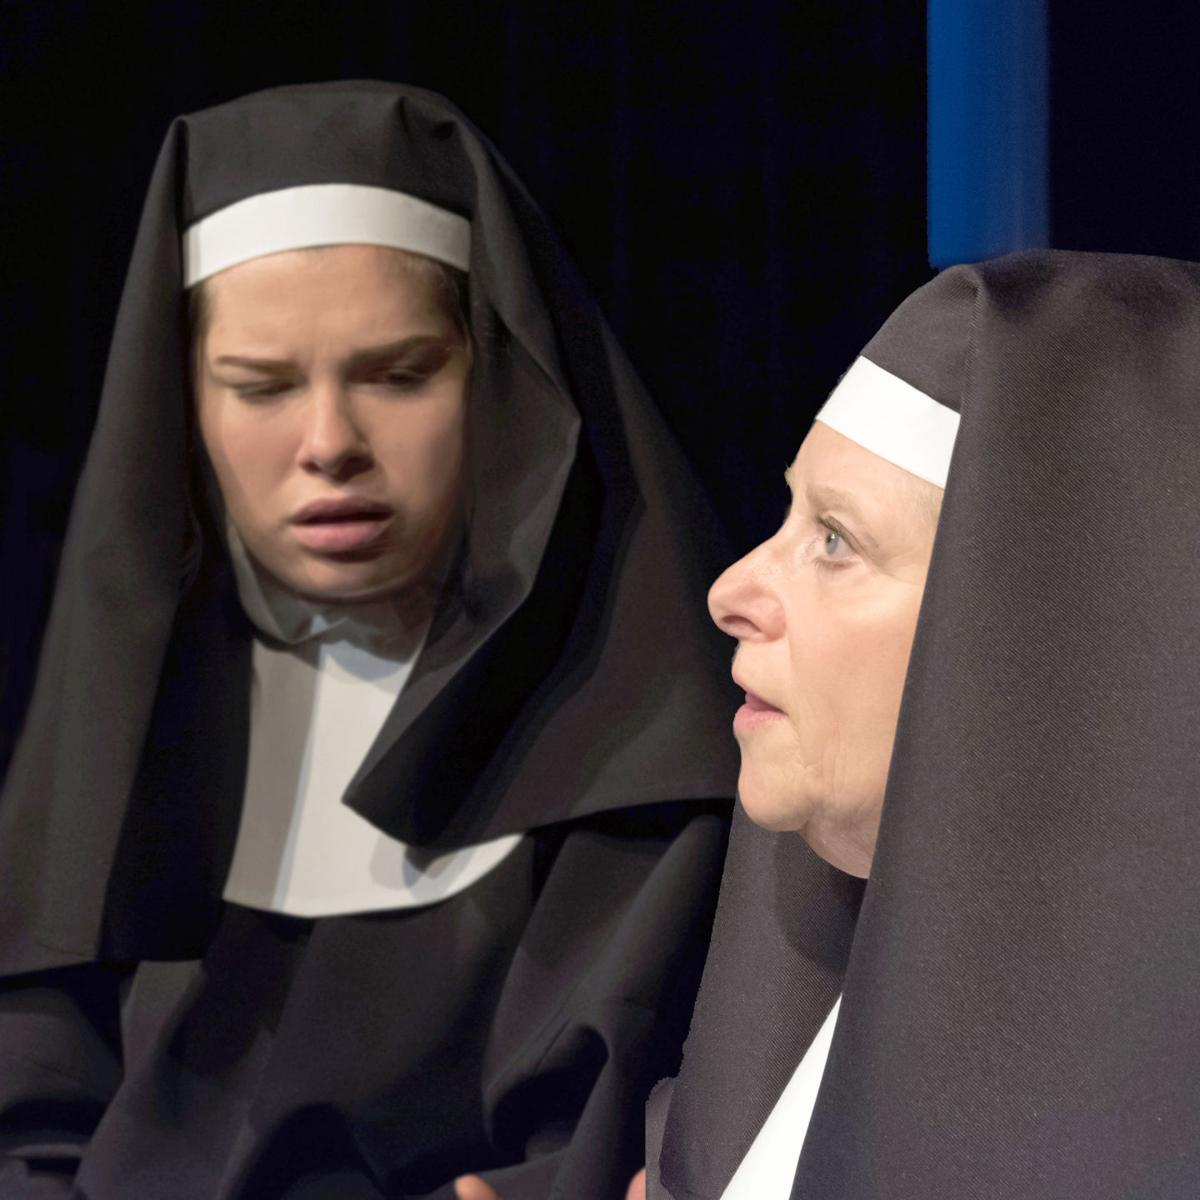 191101_oct_Foreground - Linda Capshaw in the role of Sister Aloysius - with Autumn Green in the role of Sister James.jpg